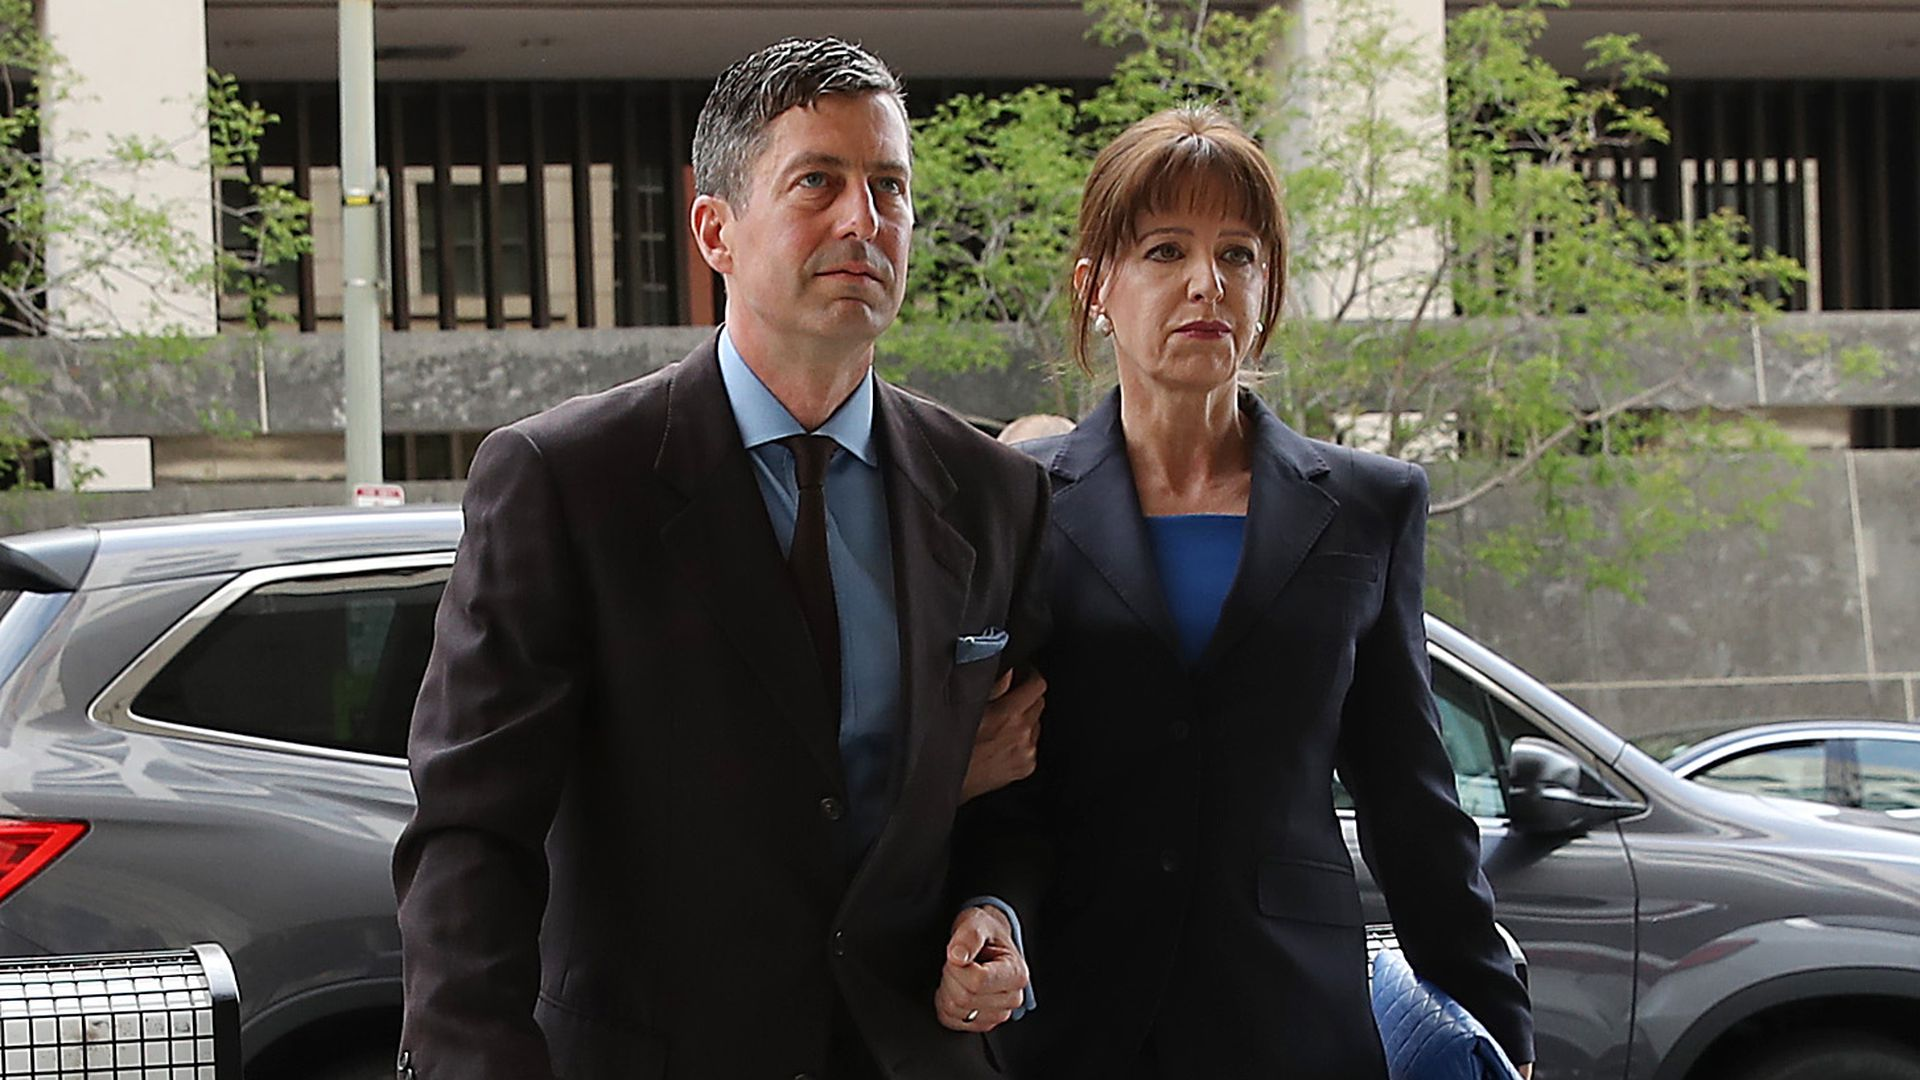 In this image, Sam Patten and his wife walk out of a sedan car with elbows linked.